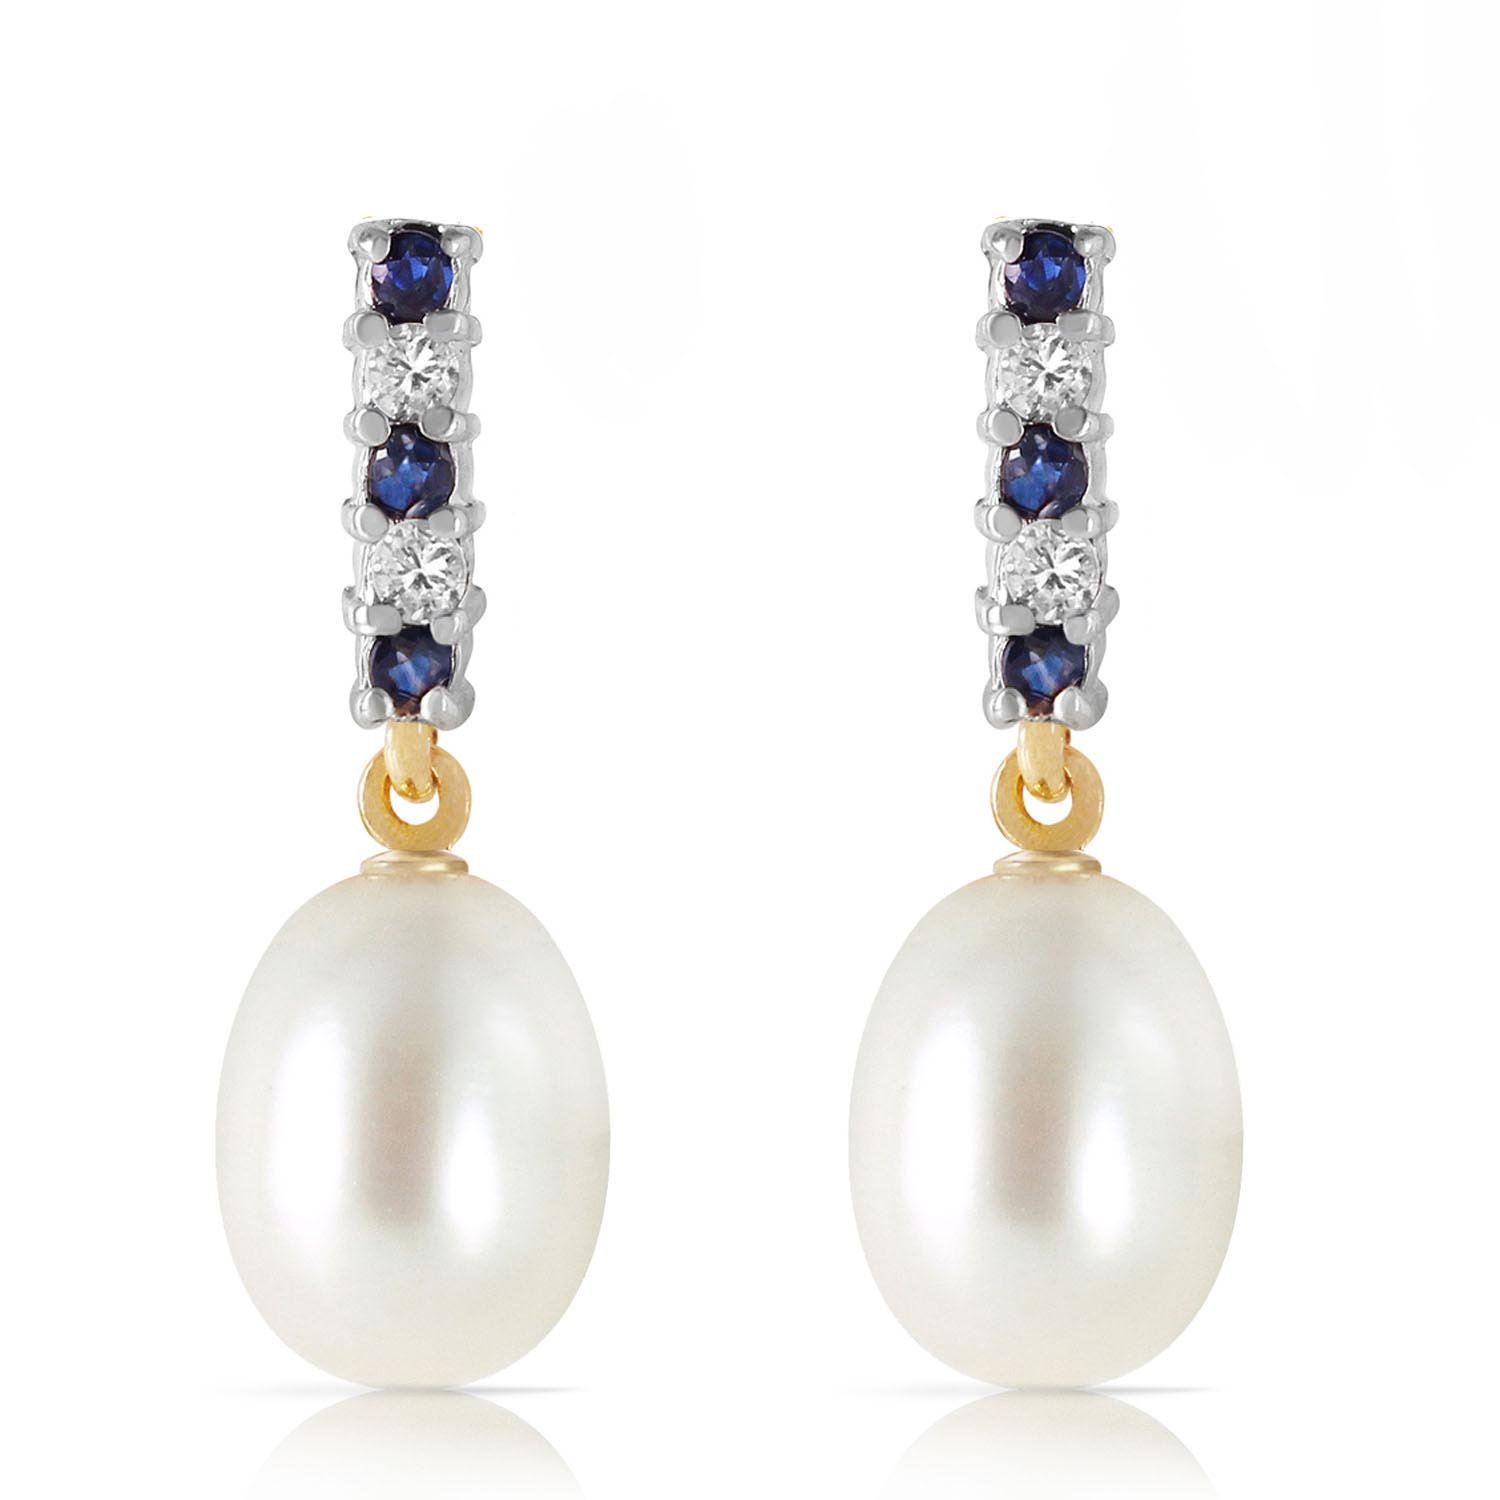 Pearl, Sapphire and Diamond Stud Earrings 8.24ctw in 14K Gold